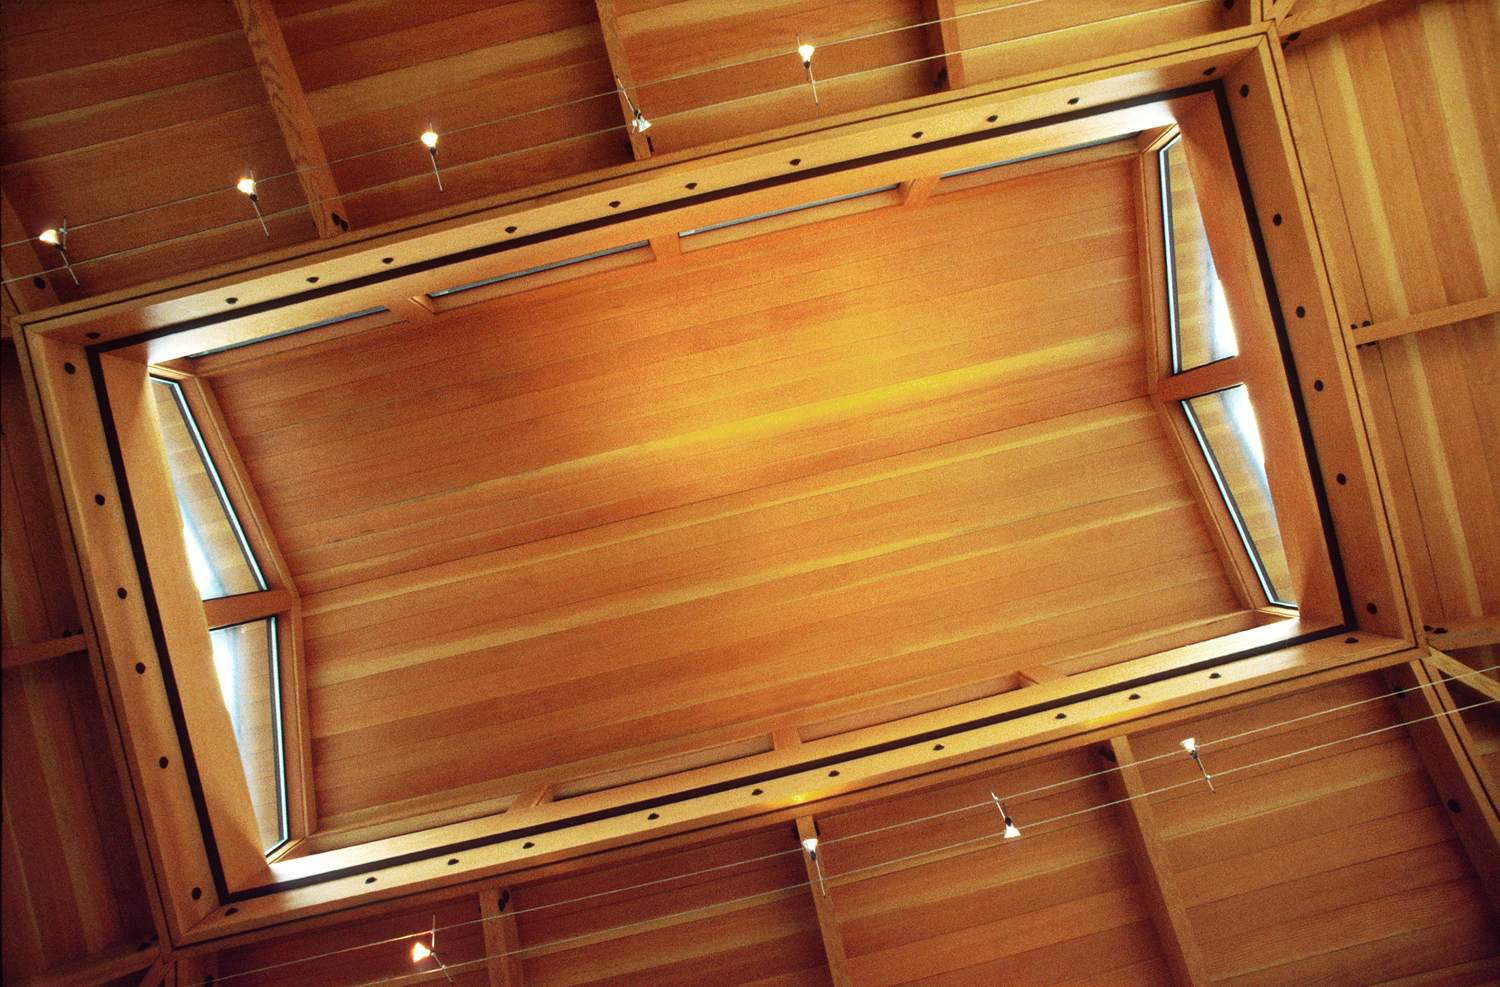 The ceiling is made of clear, recycled Douglas fir. A composite steel-and-wood rigid frame surrounds the lantern and reaches down to the walls, allowing a light and open structure.